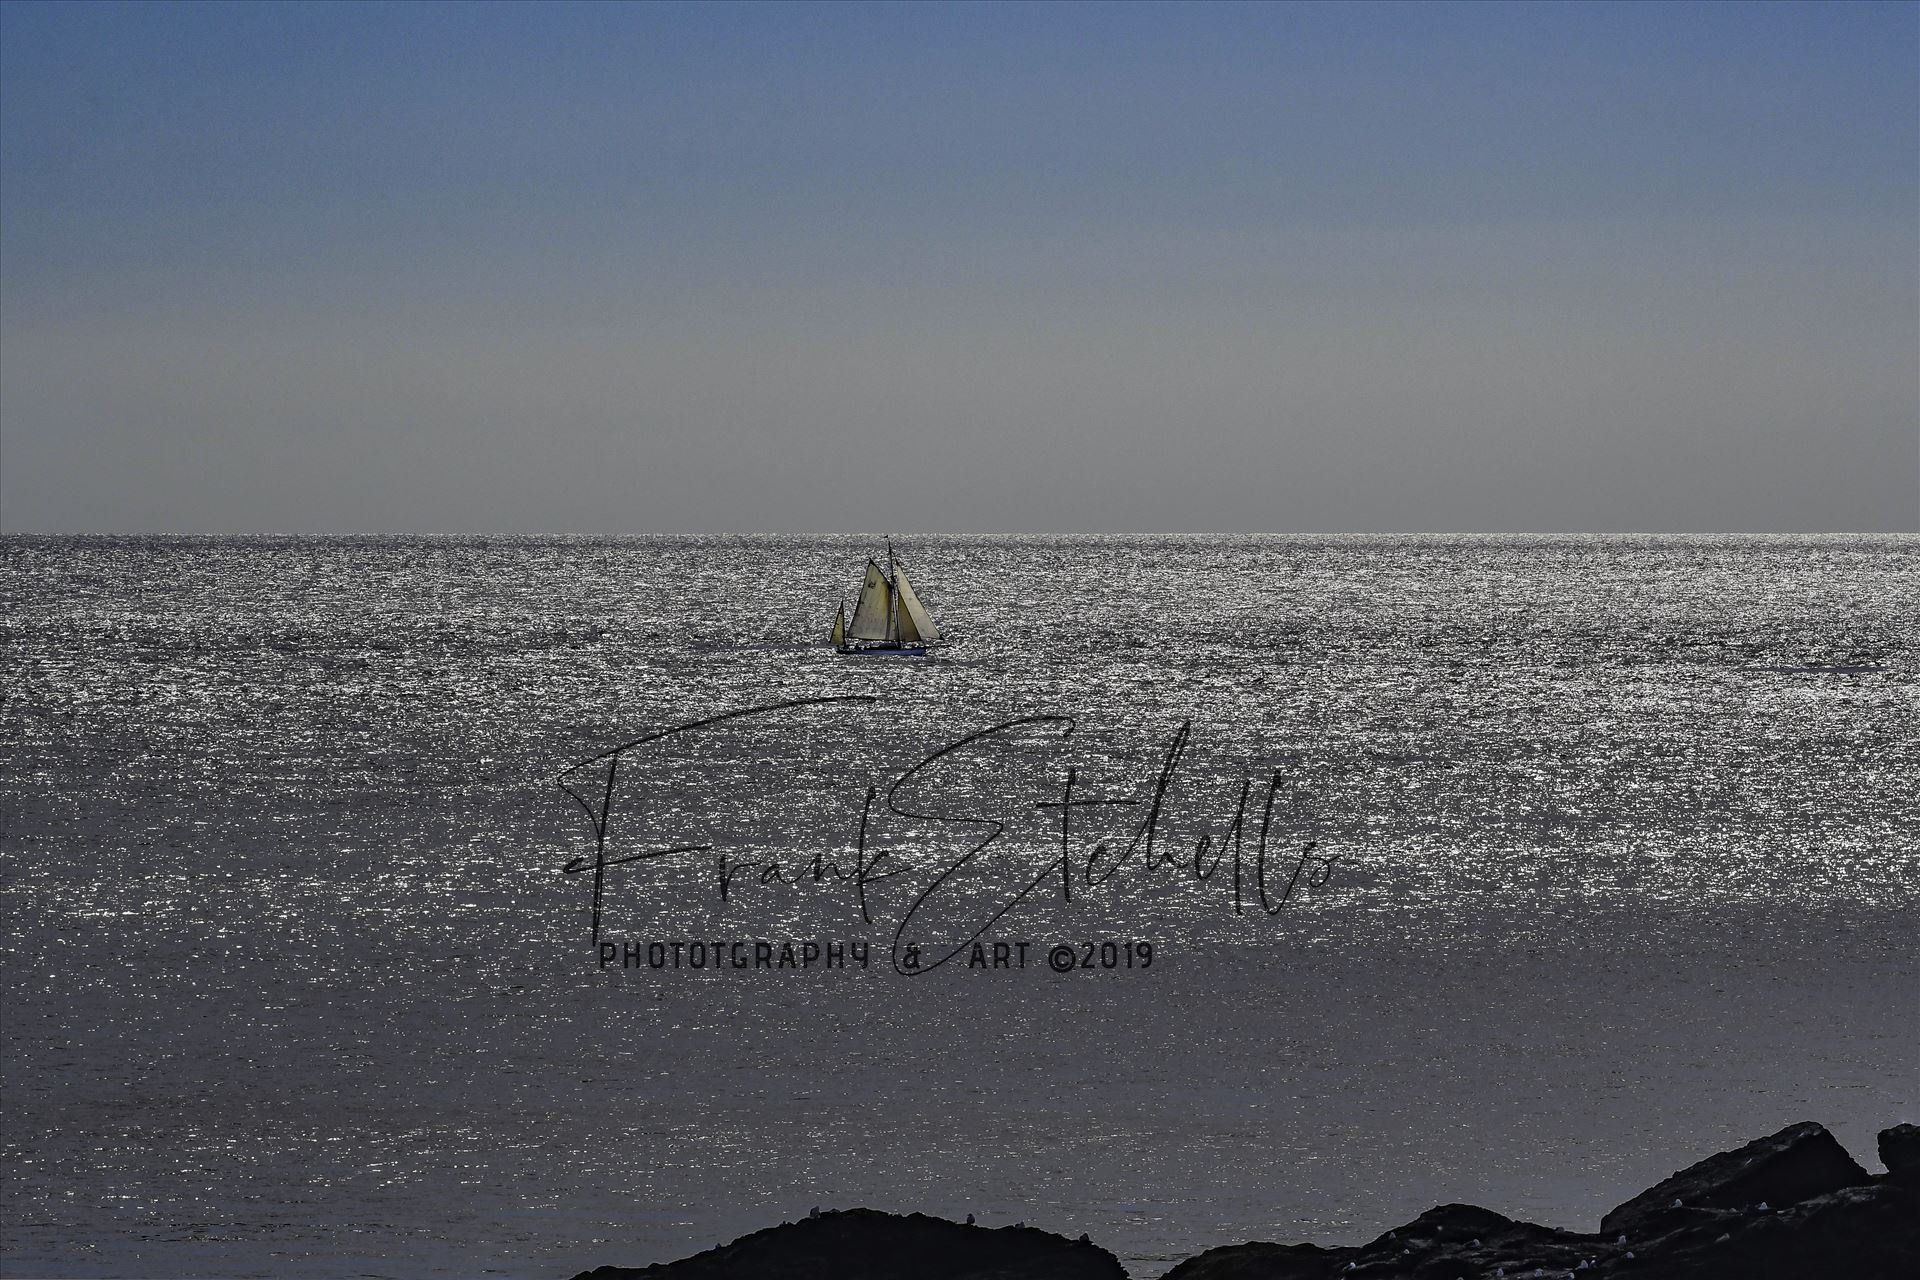 Hazy Days Sailing 2 - Walking the South West Coastal path at The Lizard, Cornwall on a glorious day in August 2017, This Ketch was sailing on the shimmery sea with a blue cloudless sky and haze on the horizon. Gin & Tonic, Rum & Lime Time.